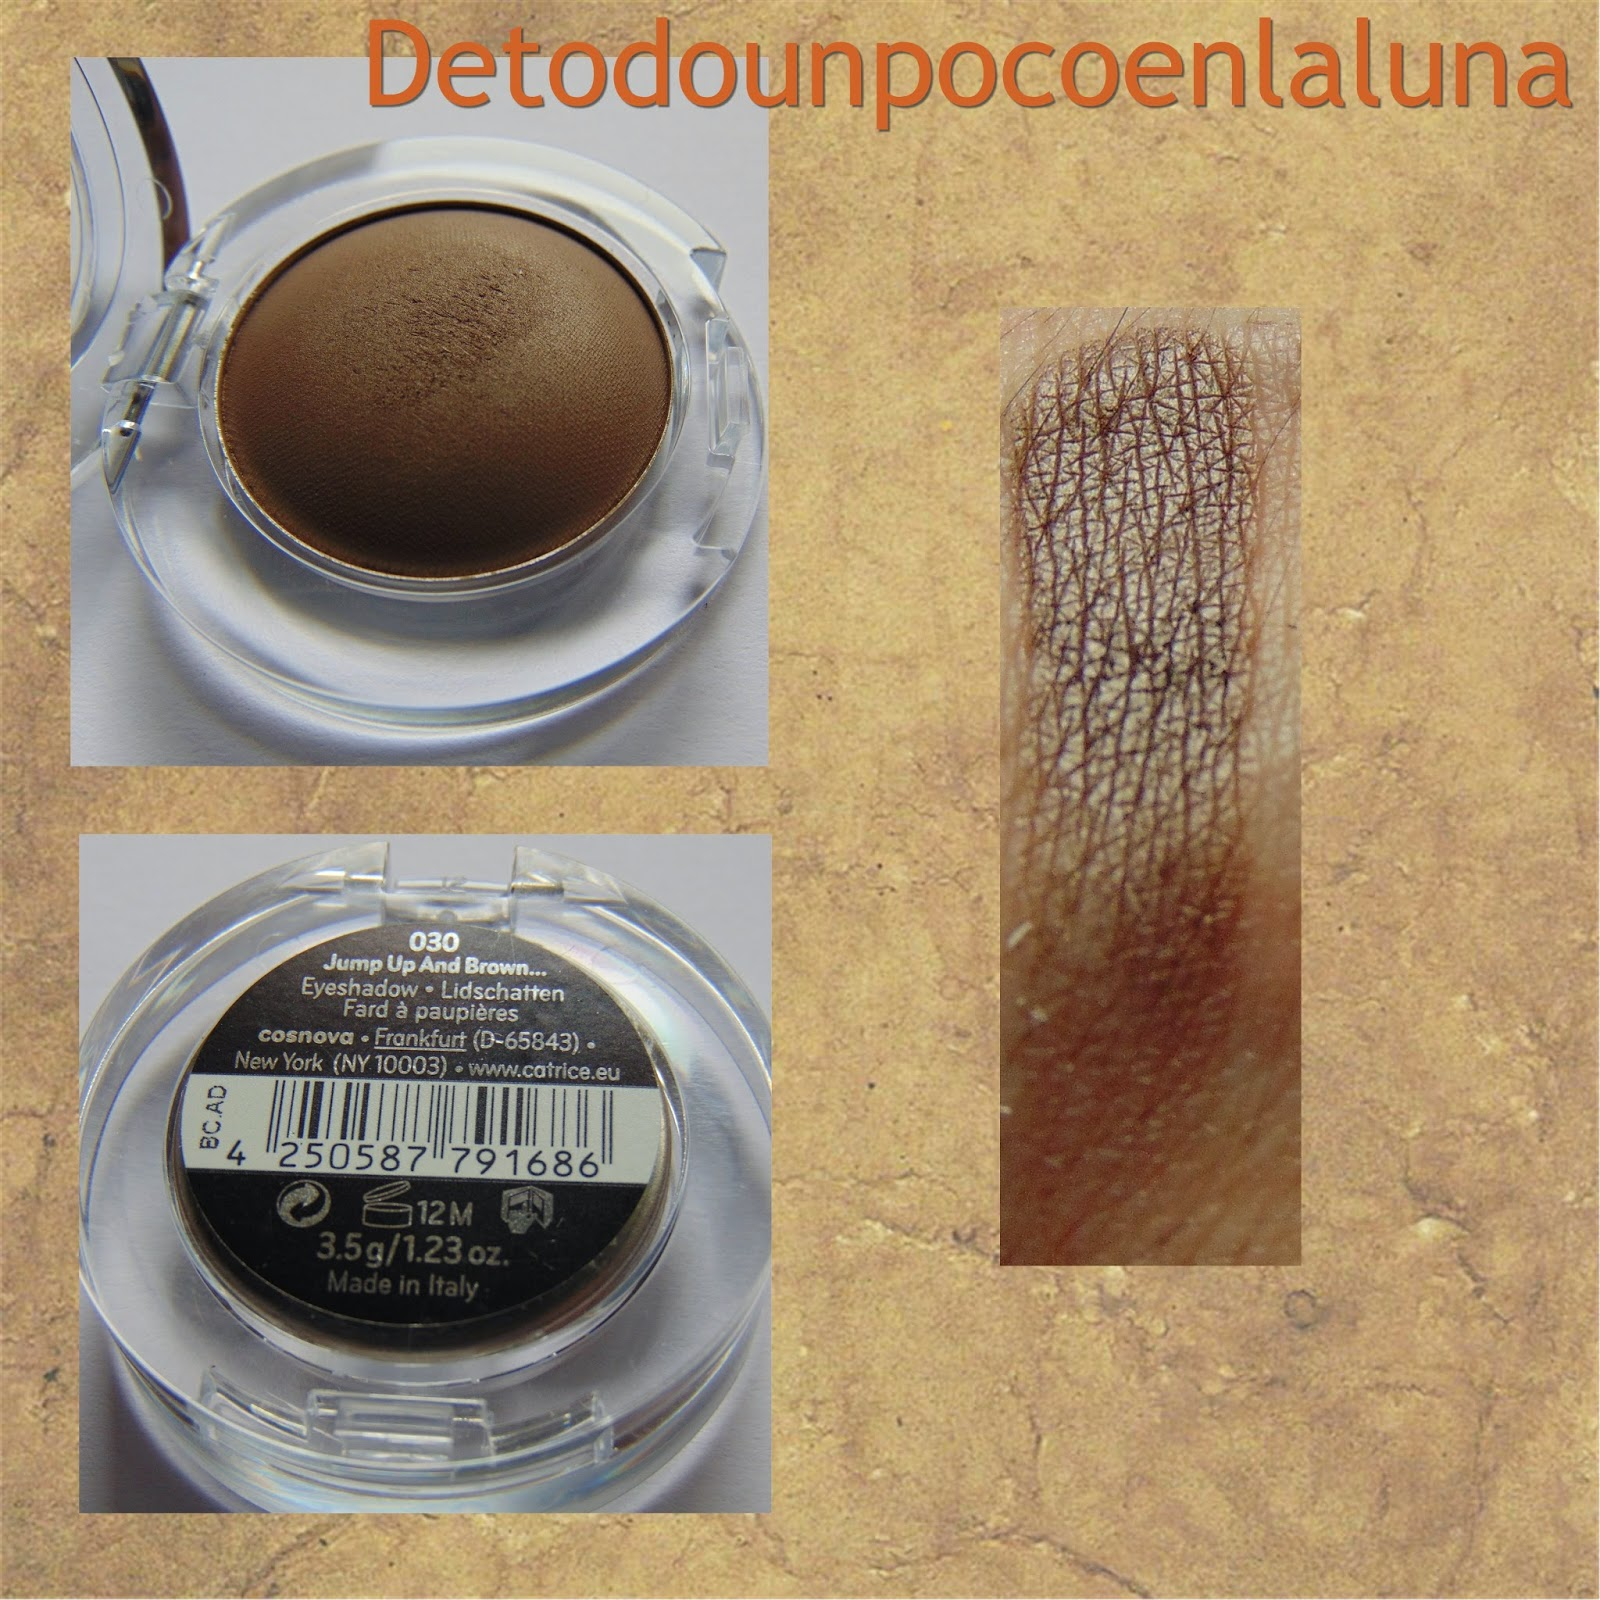 030 Jump Up and Brown Sombras Velvet Matt Eyeshadow de Catrice